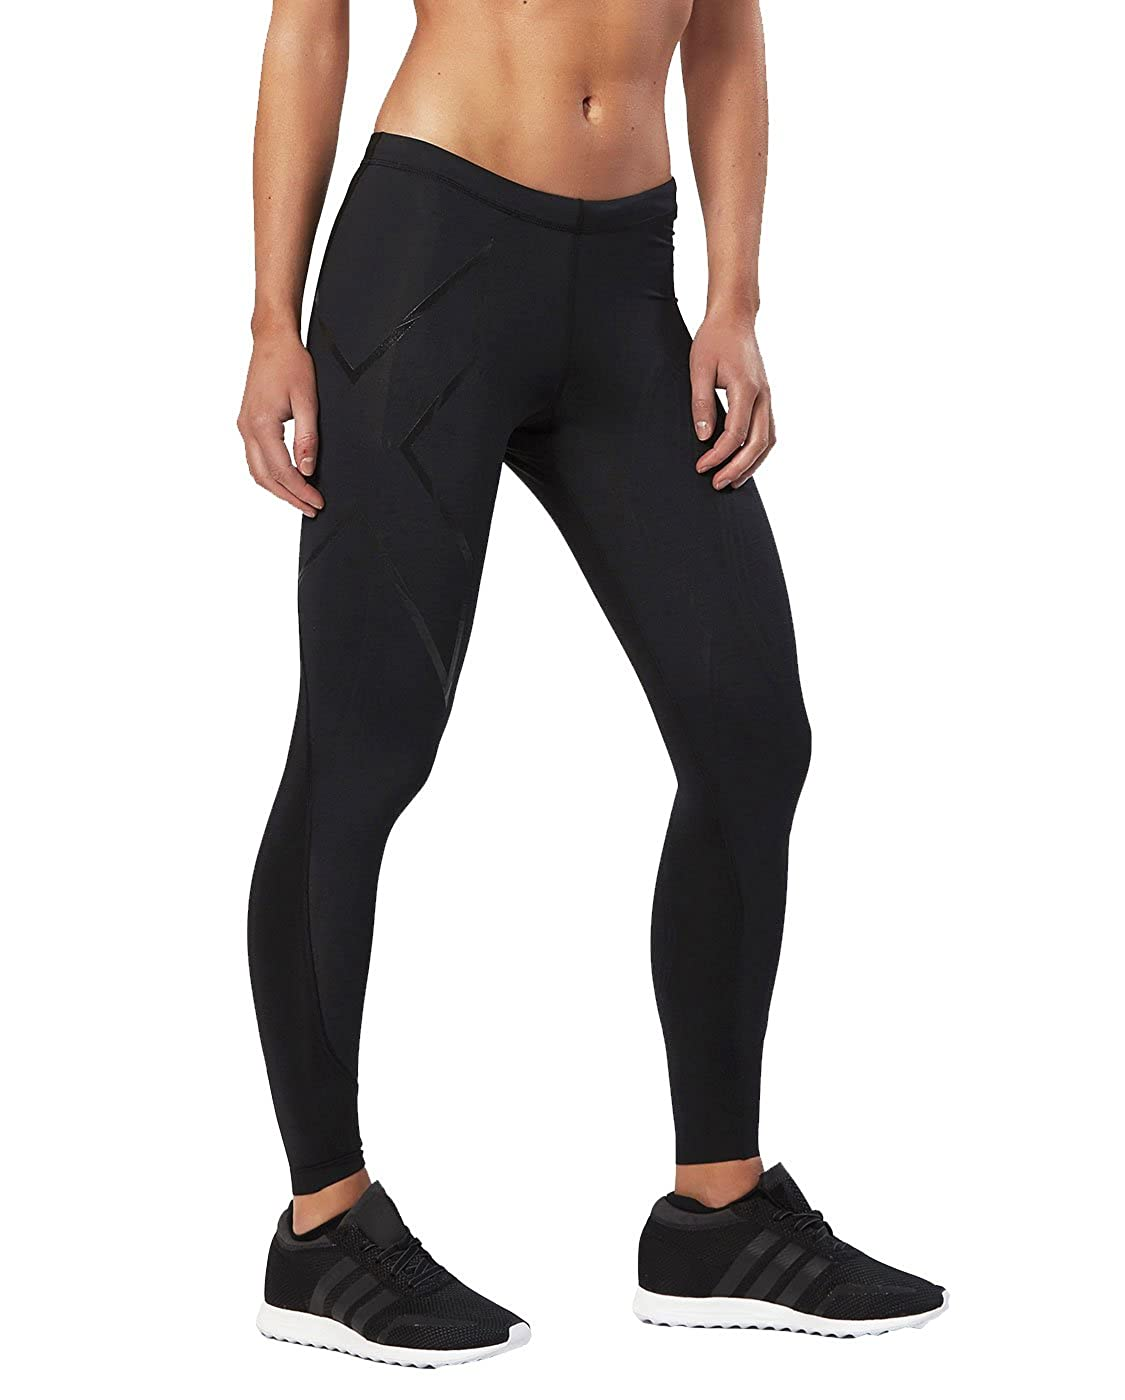 Image of 2XU Women's Elite MCS Compression Tights Compression Pants & Tights